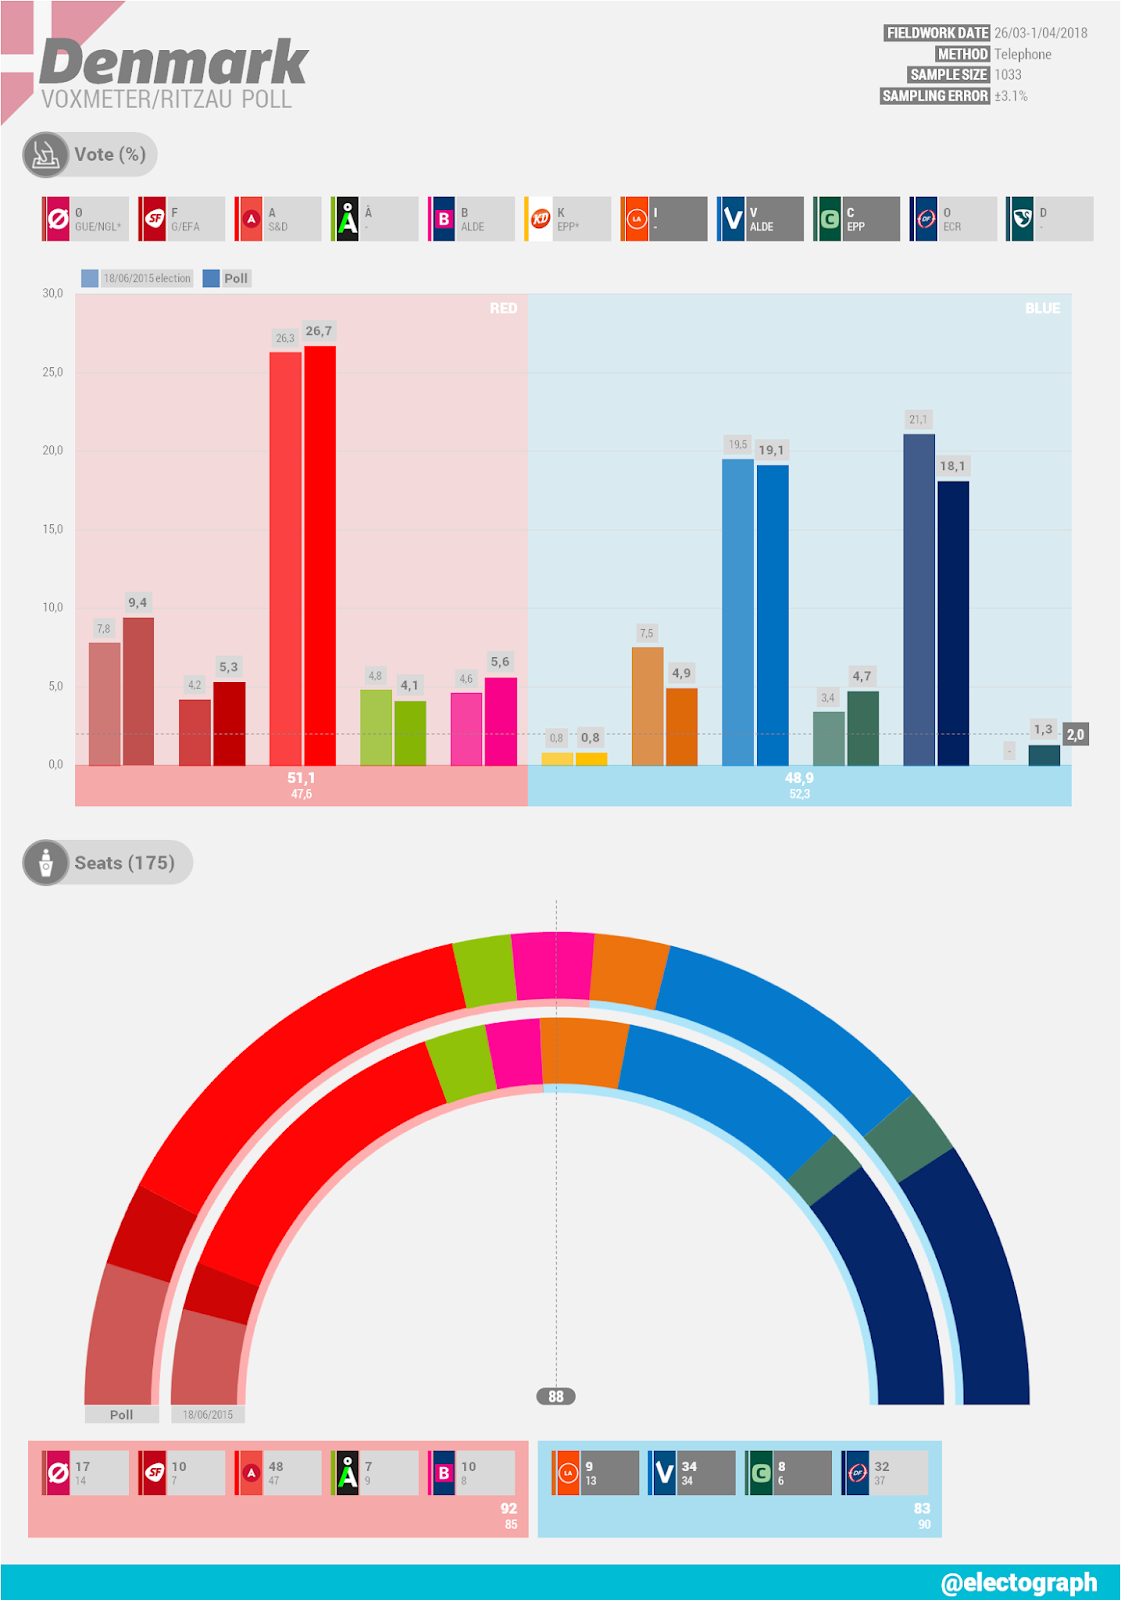 DENMARK Voxmeter poll chart for Ritzau, April 2018